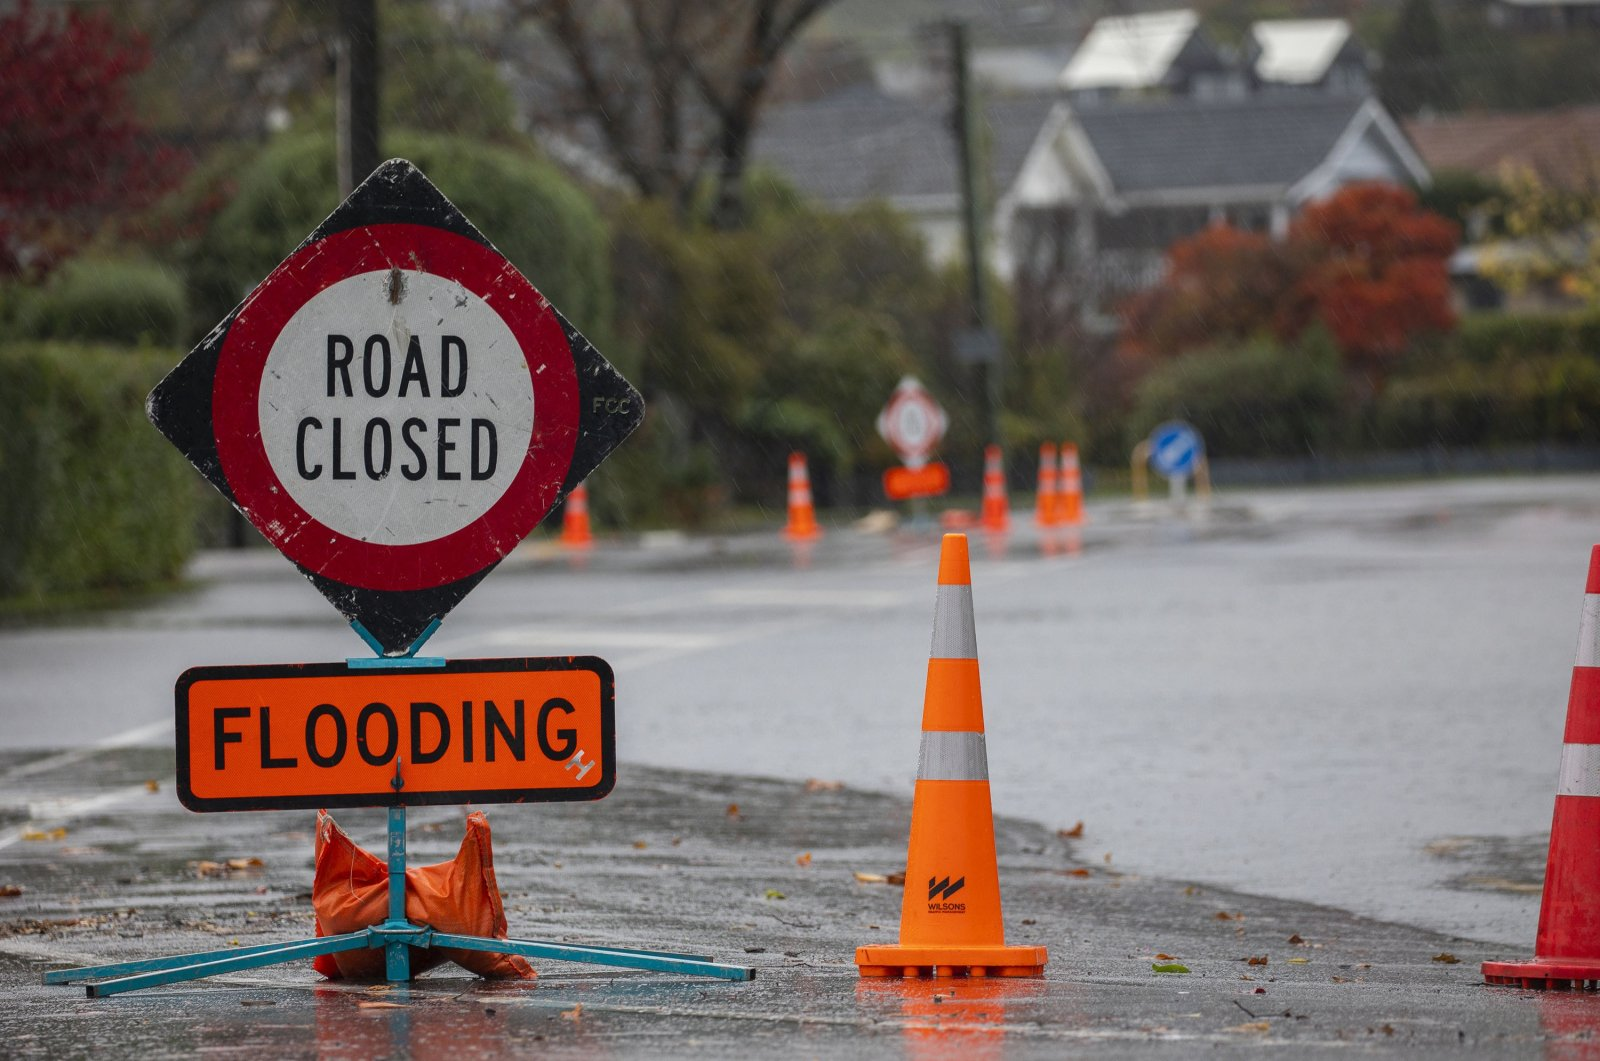 A road closed sign warns drivers of a flooded road in Christchurch, NewZealand, May 30, 2021.(Getty Images)